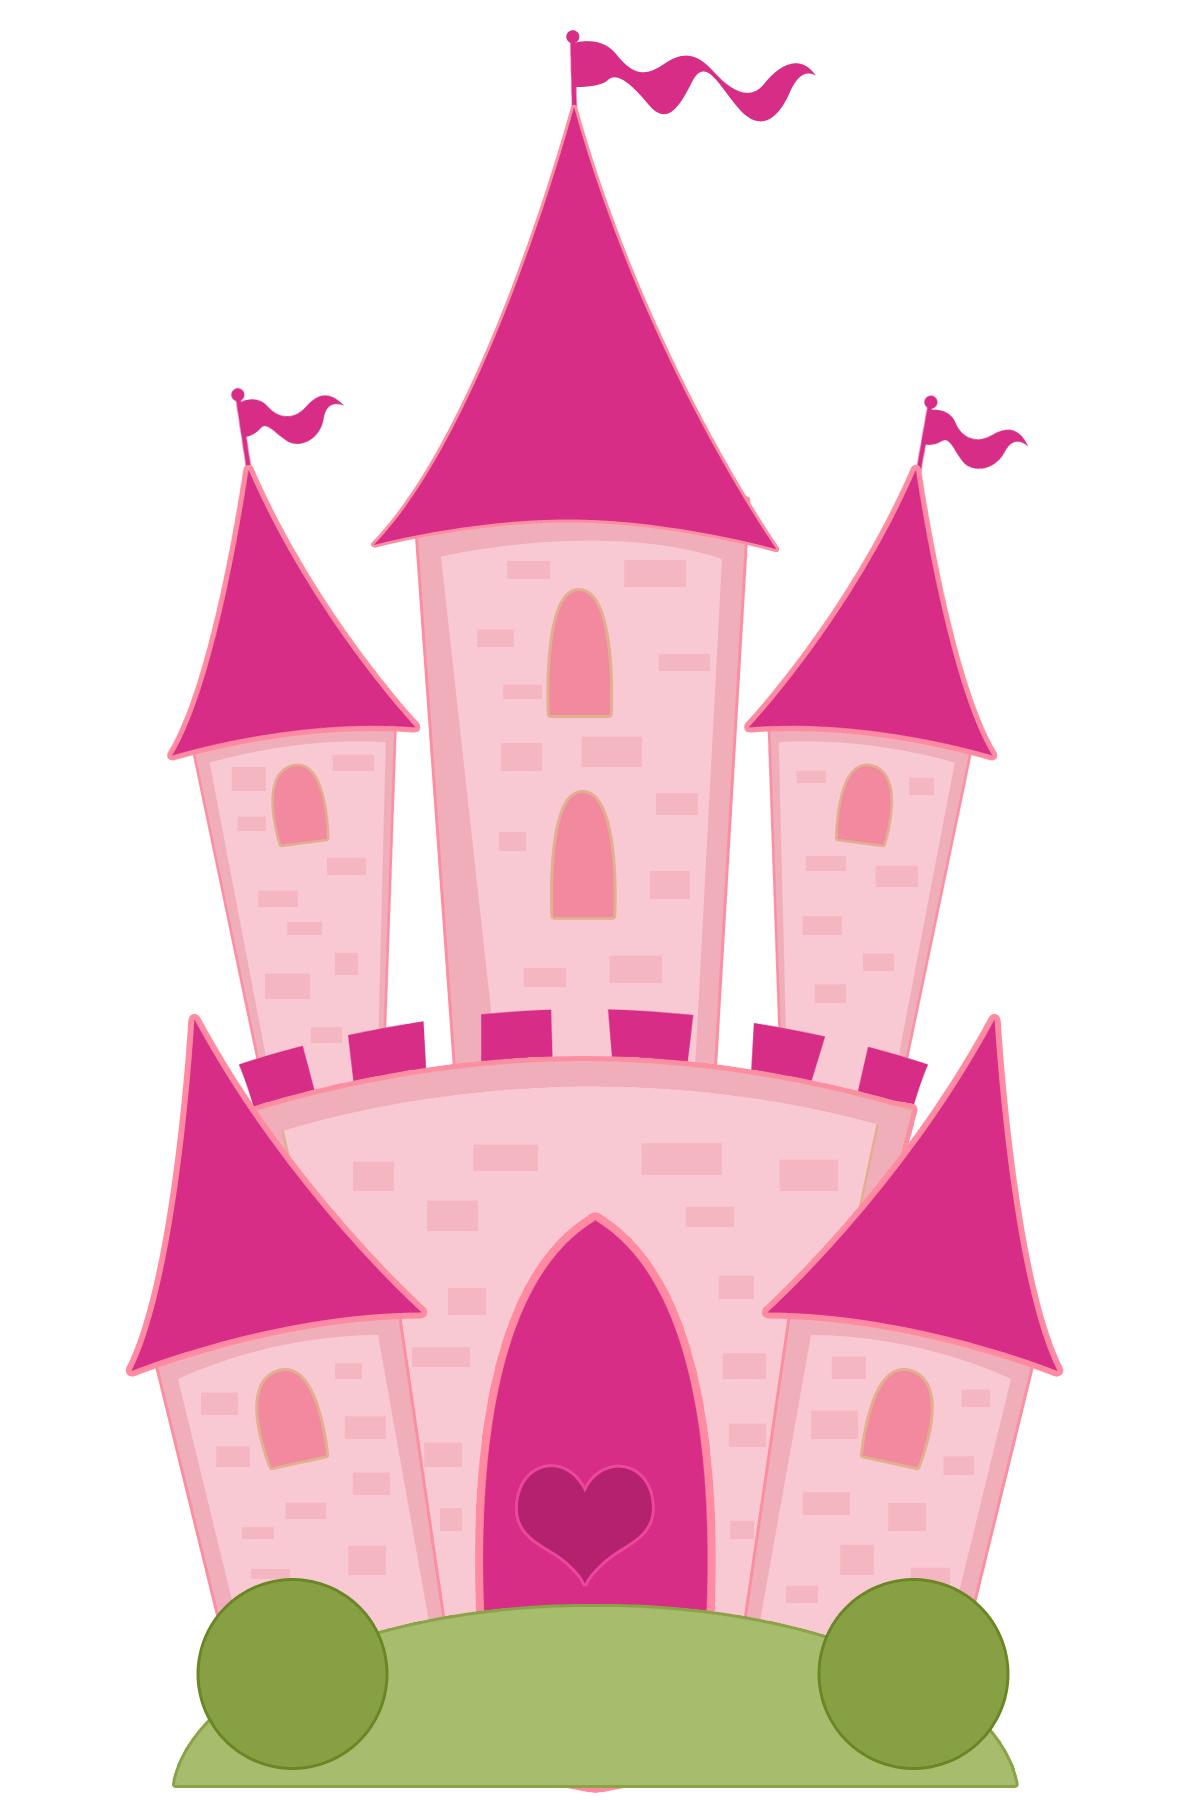 Palace clipart beautiful castle. Princesas e pr ncipes